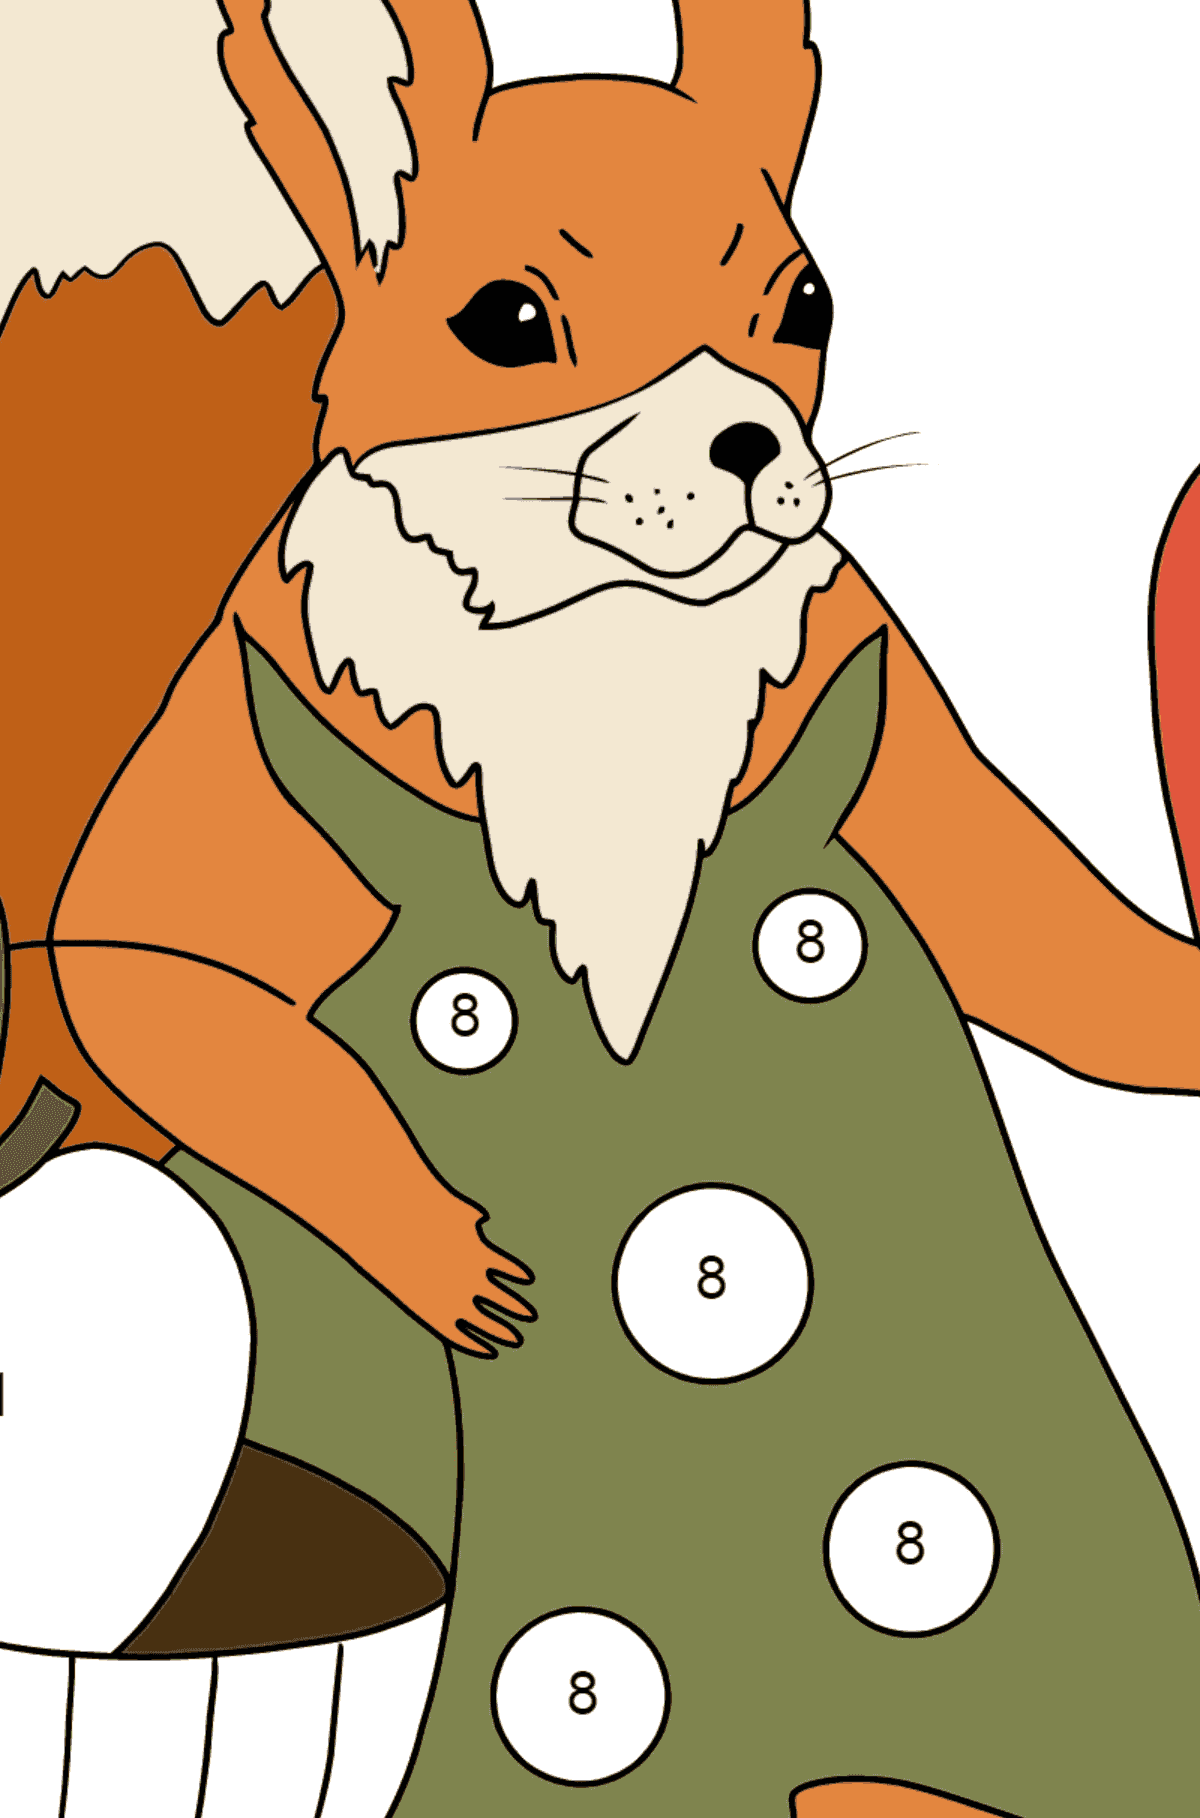 Summer Coloring Page - Squirrels with Apples for Children  - Color by Number